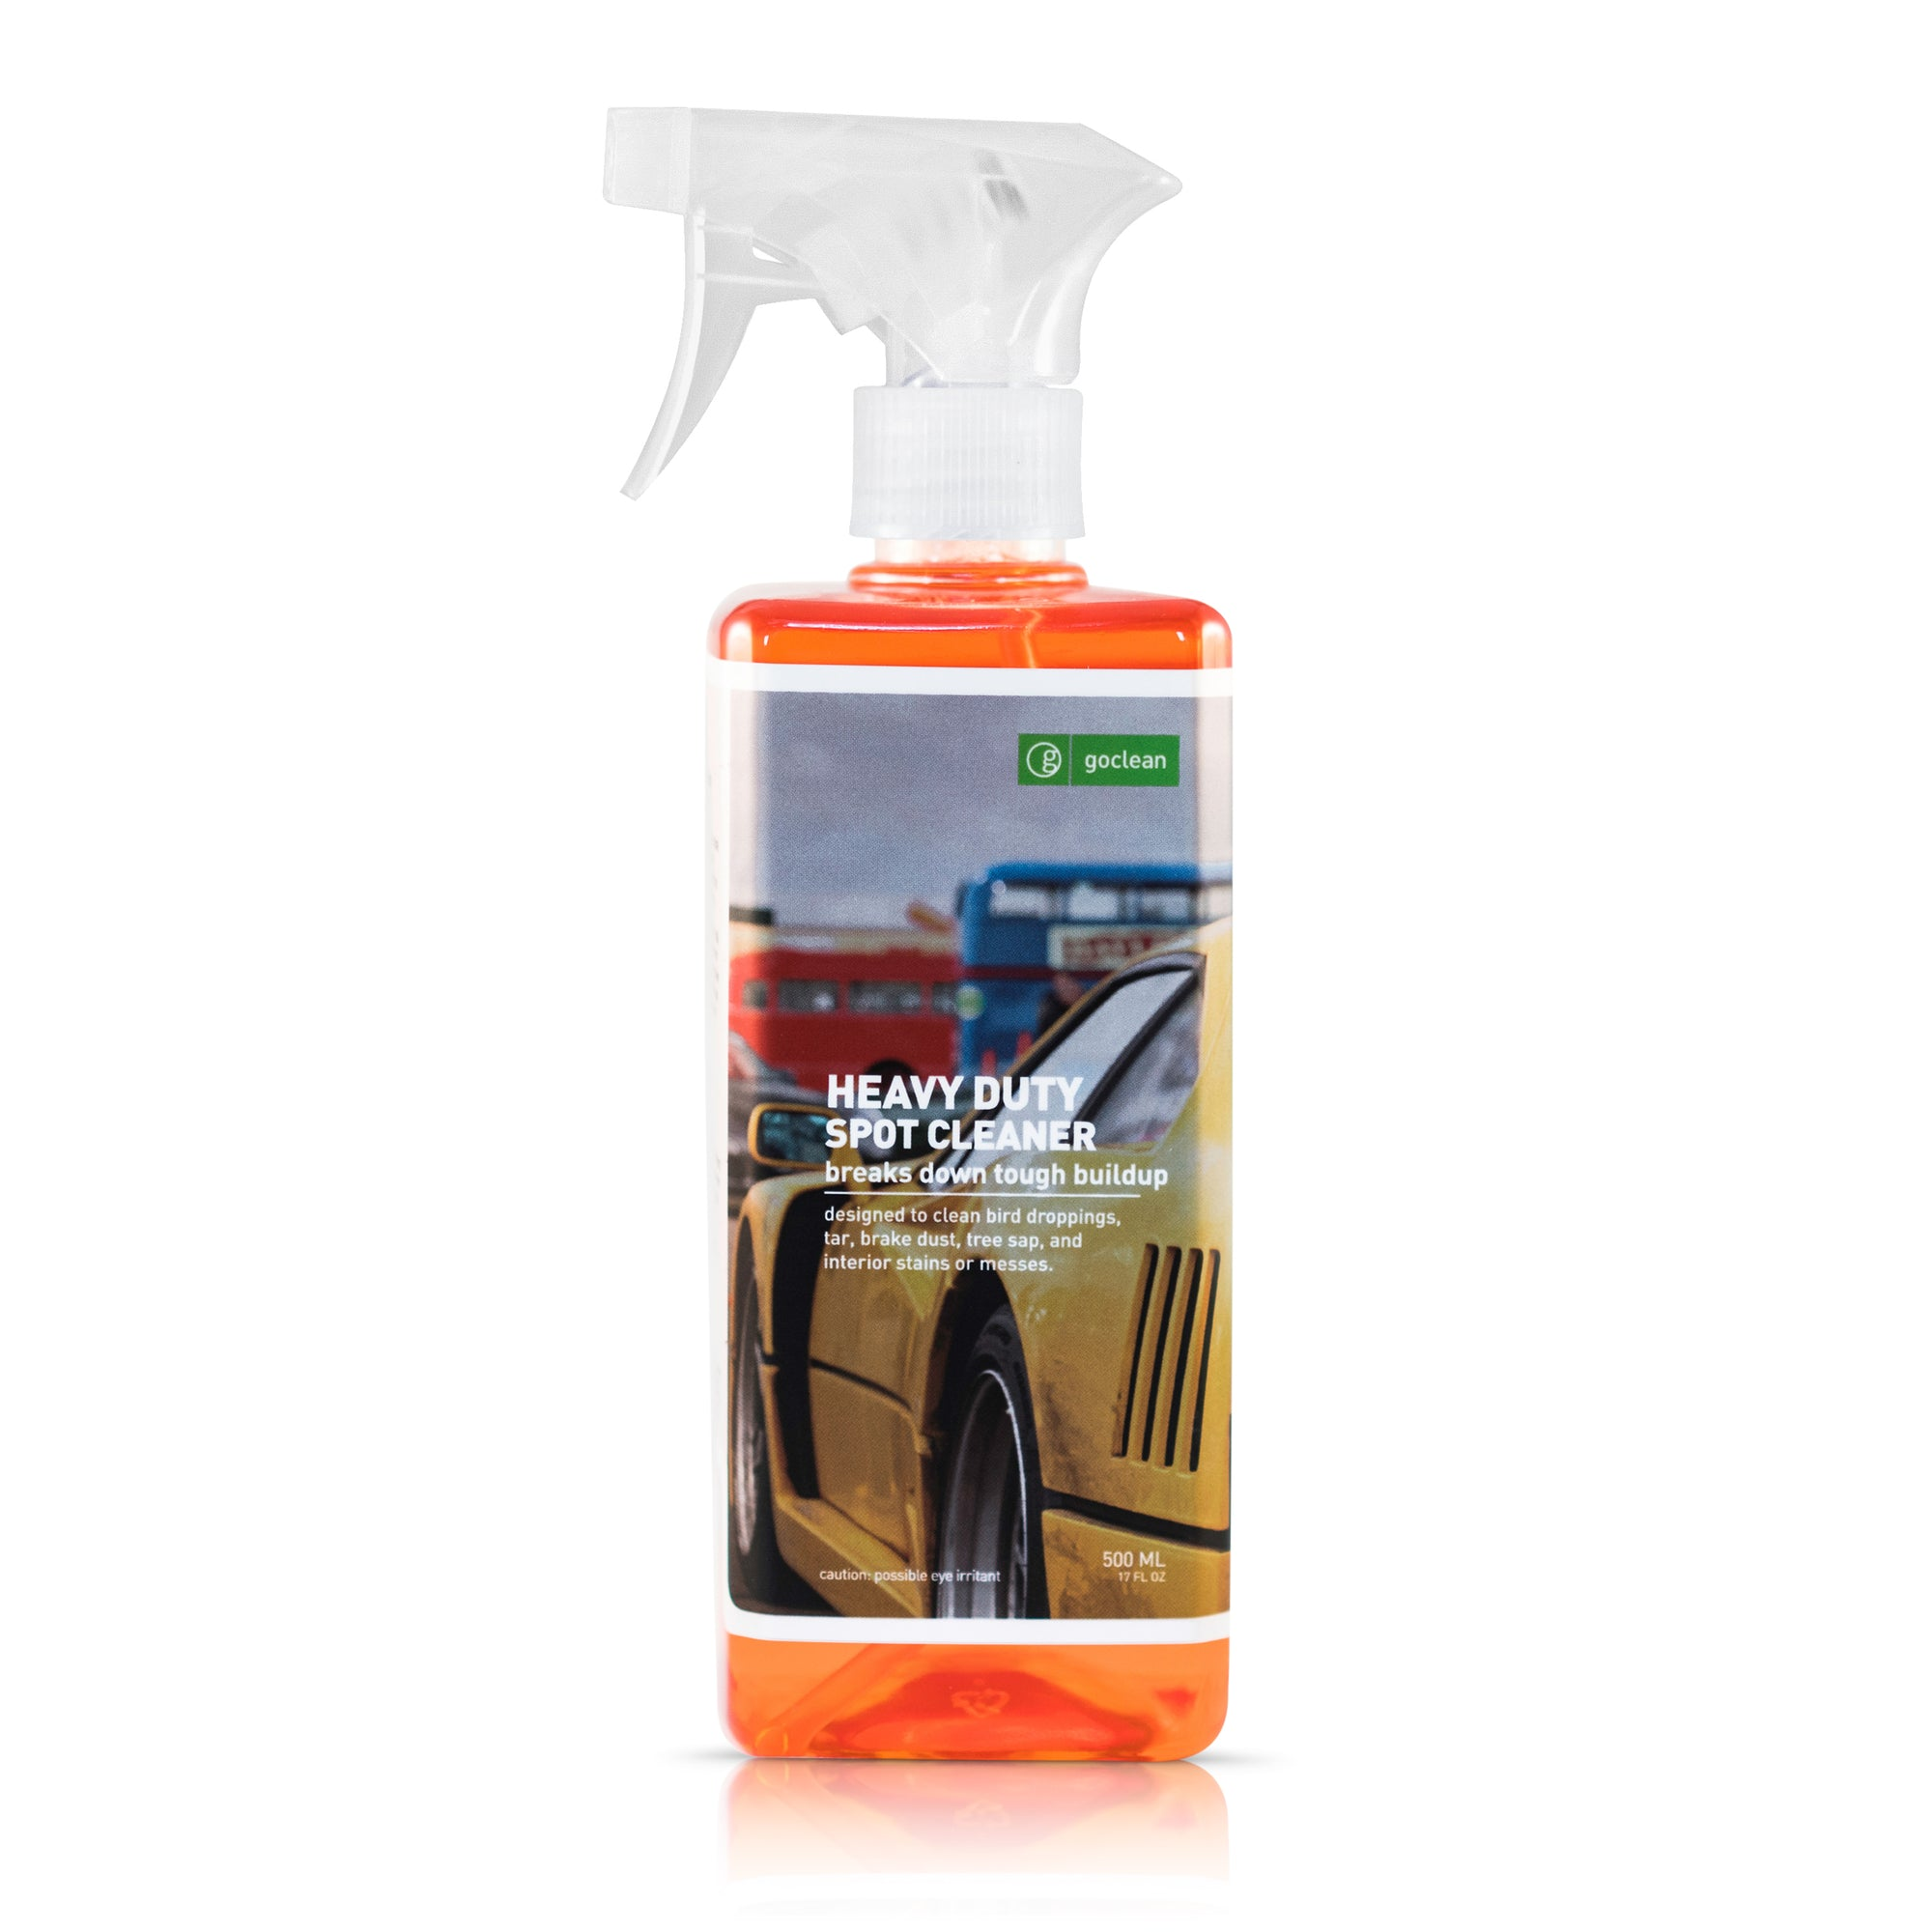 HEAVY DUTY SPOT CLEANER